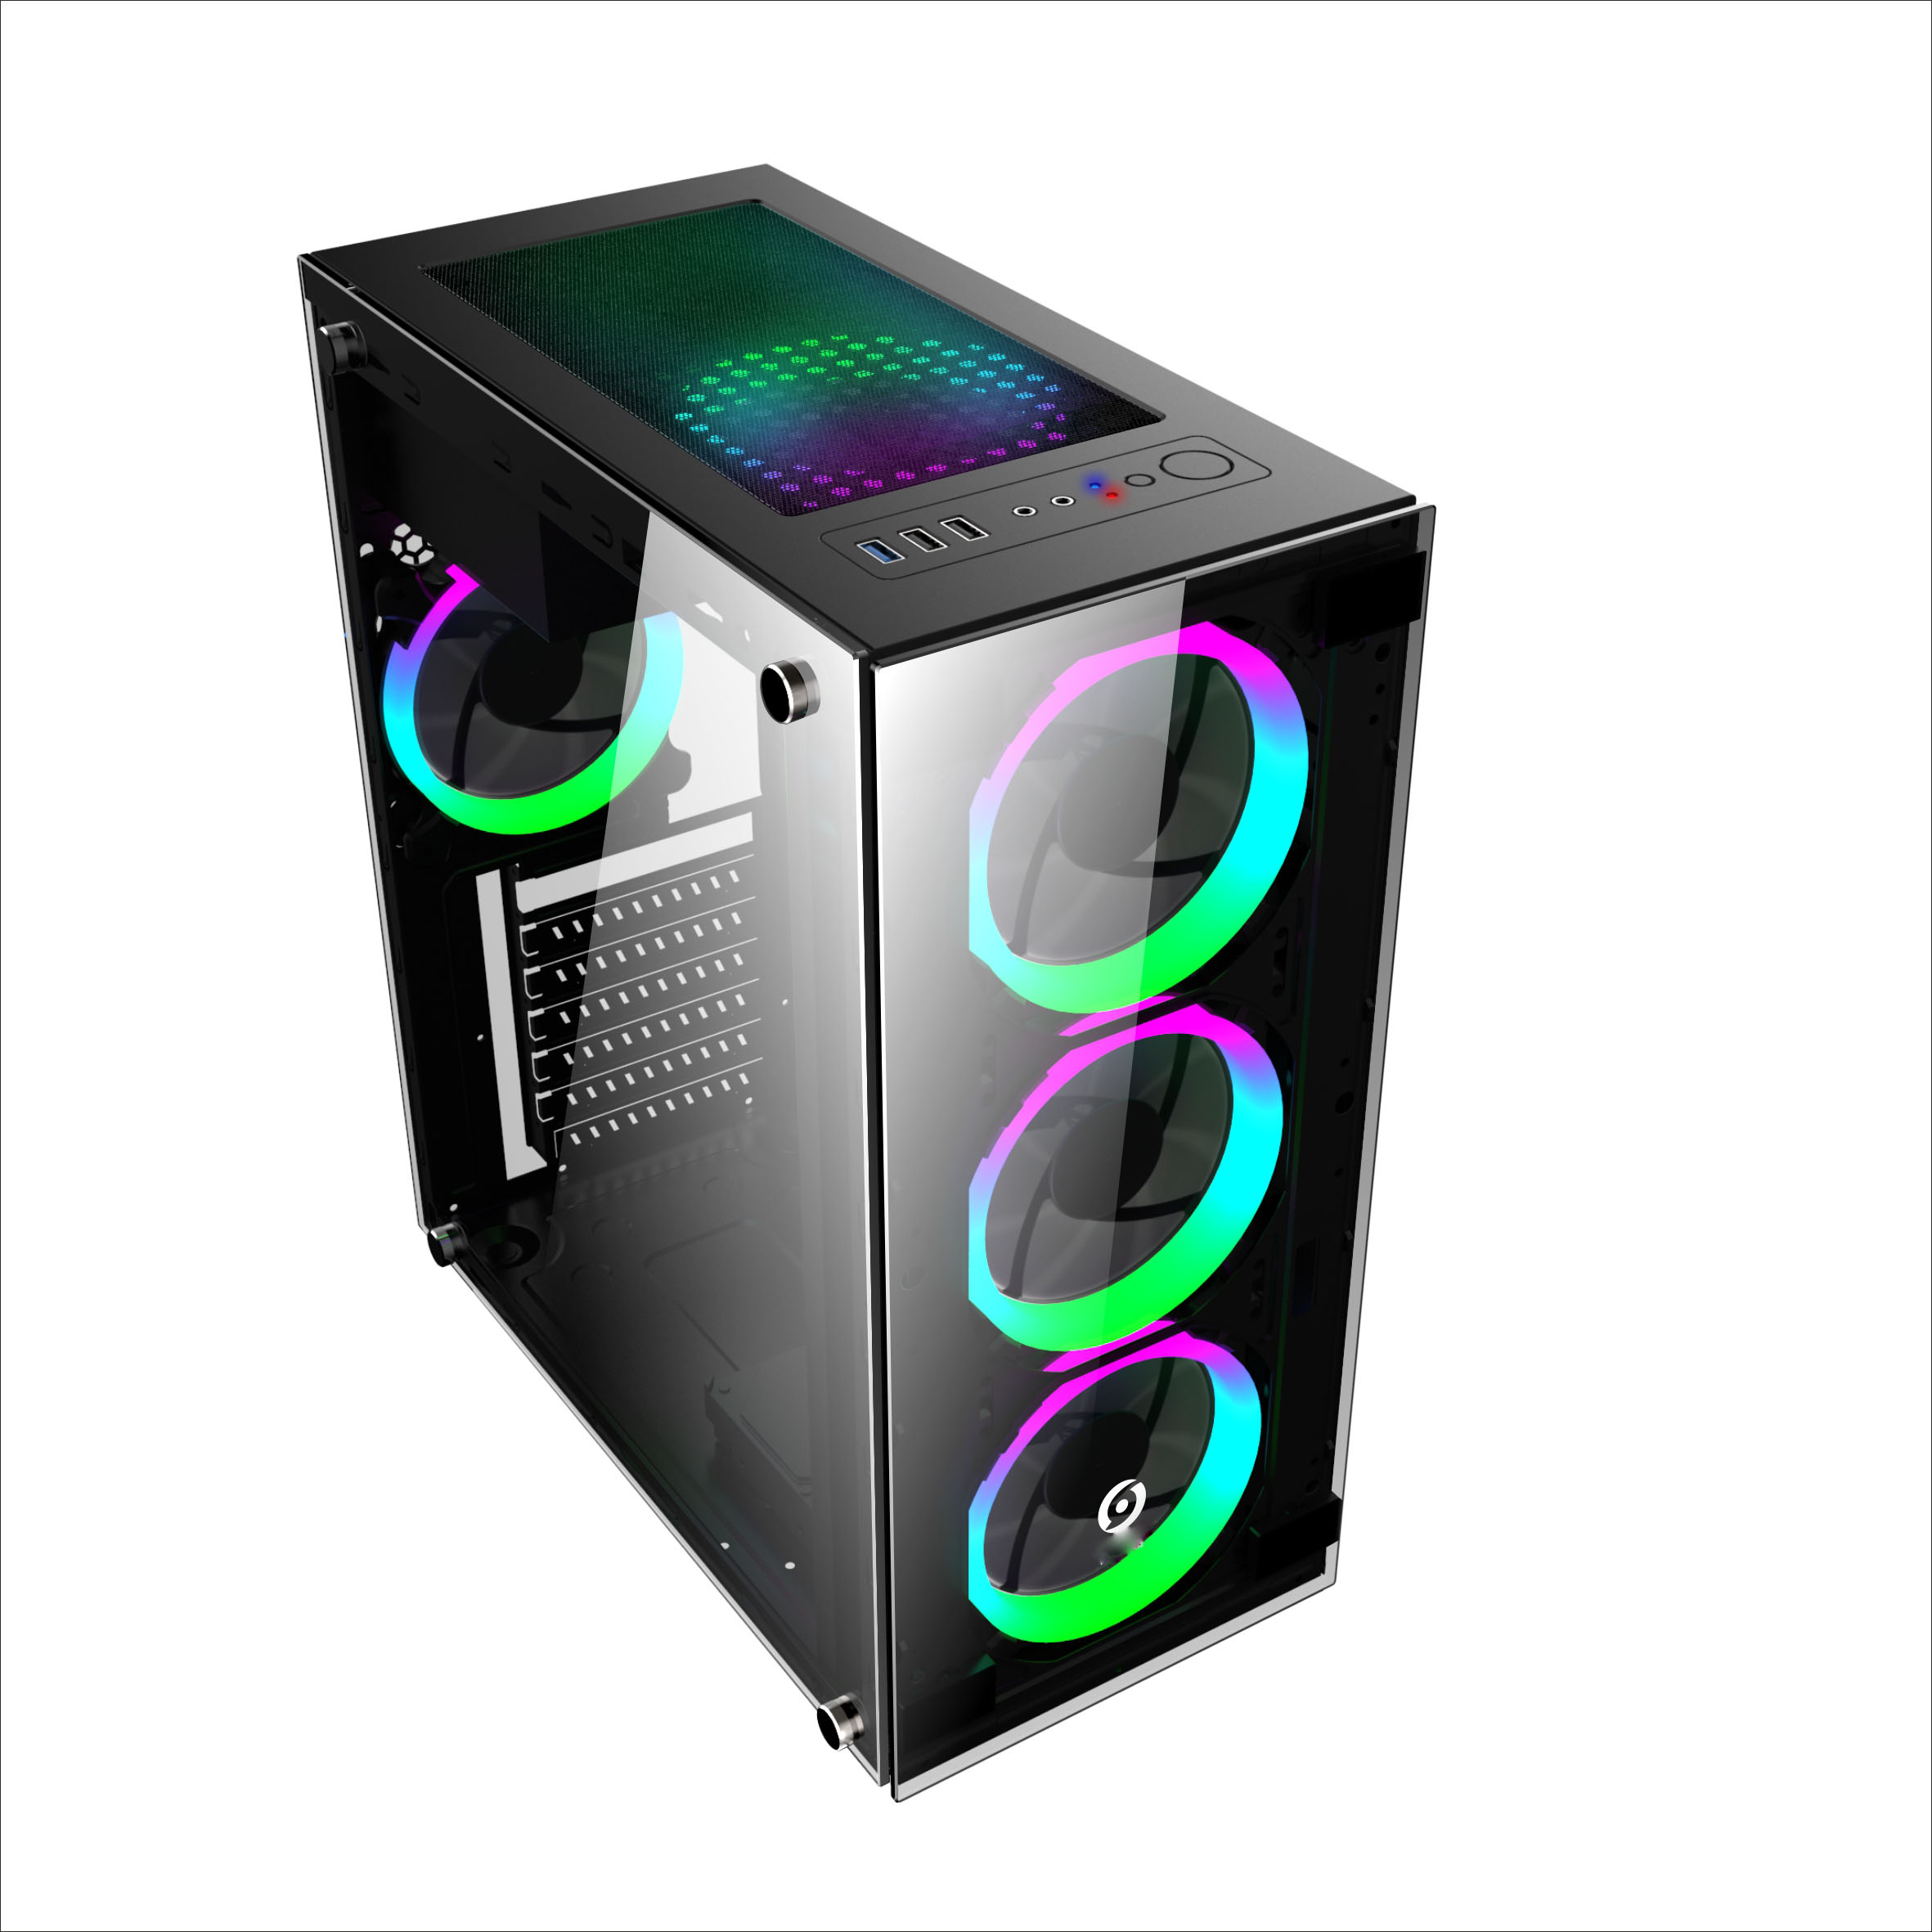 Case Pc Middle Tower Atx Computer Gaming Case With Tempered Glass Front Panel Rgb Fan Buy Pc Gaming Case Computer Tower Case With Handle Computer Gaming